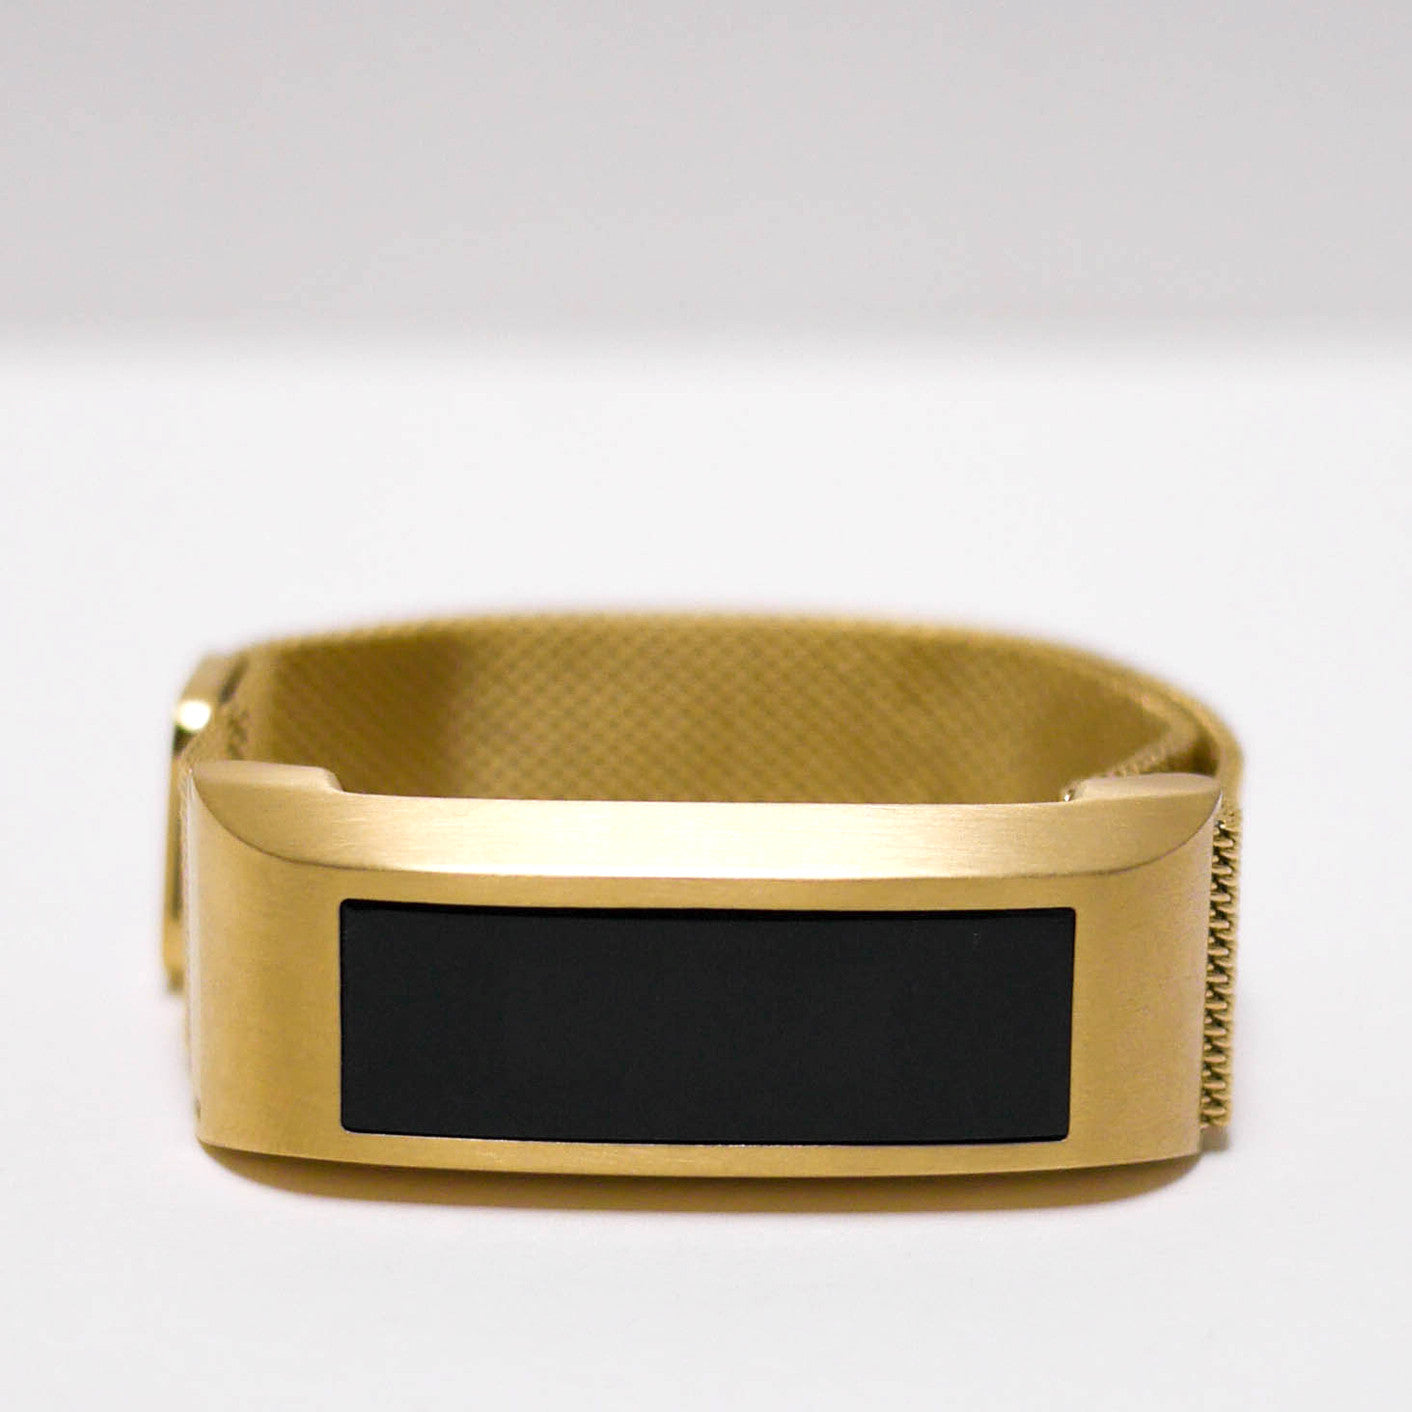 morstep fitbit alta bracelet gold jewelry accessories